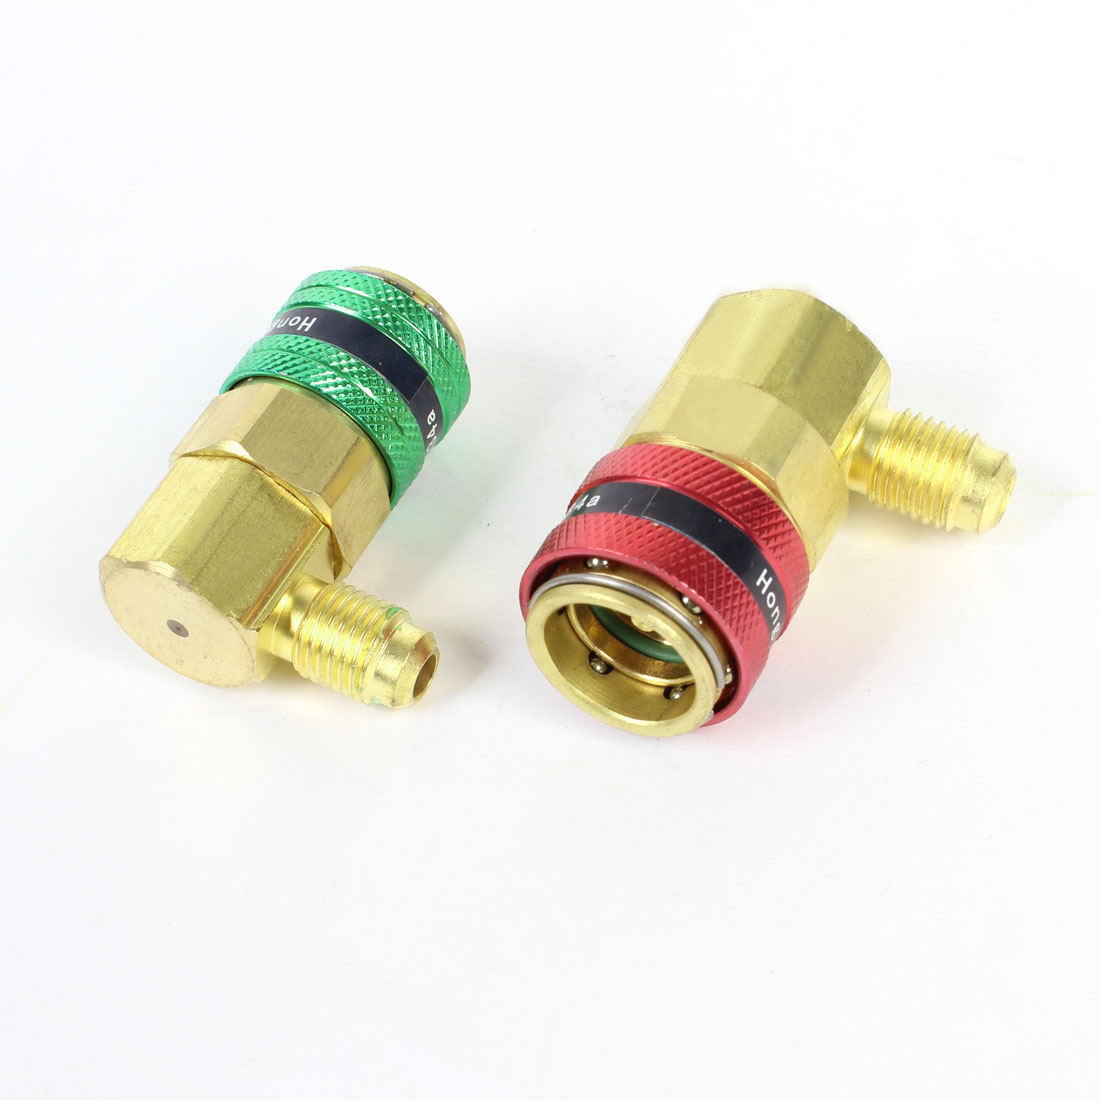 Car Auto A/C R134a QC-12A Quick Connector Adapter Coupler Green Red x 2